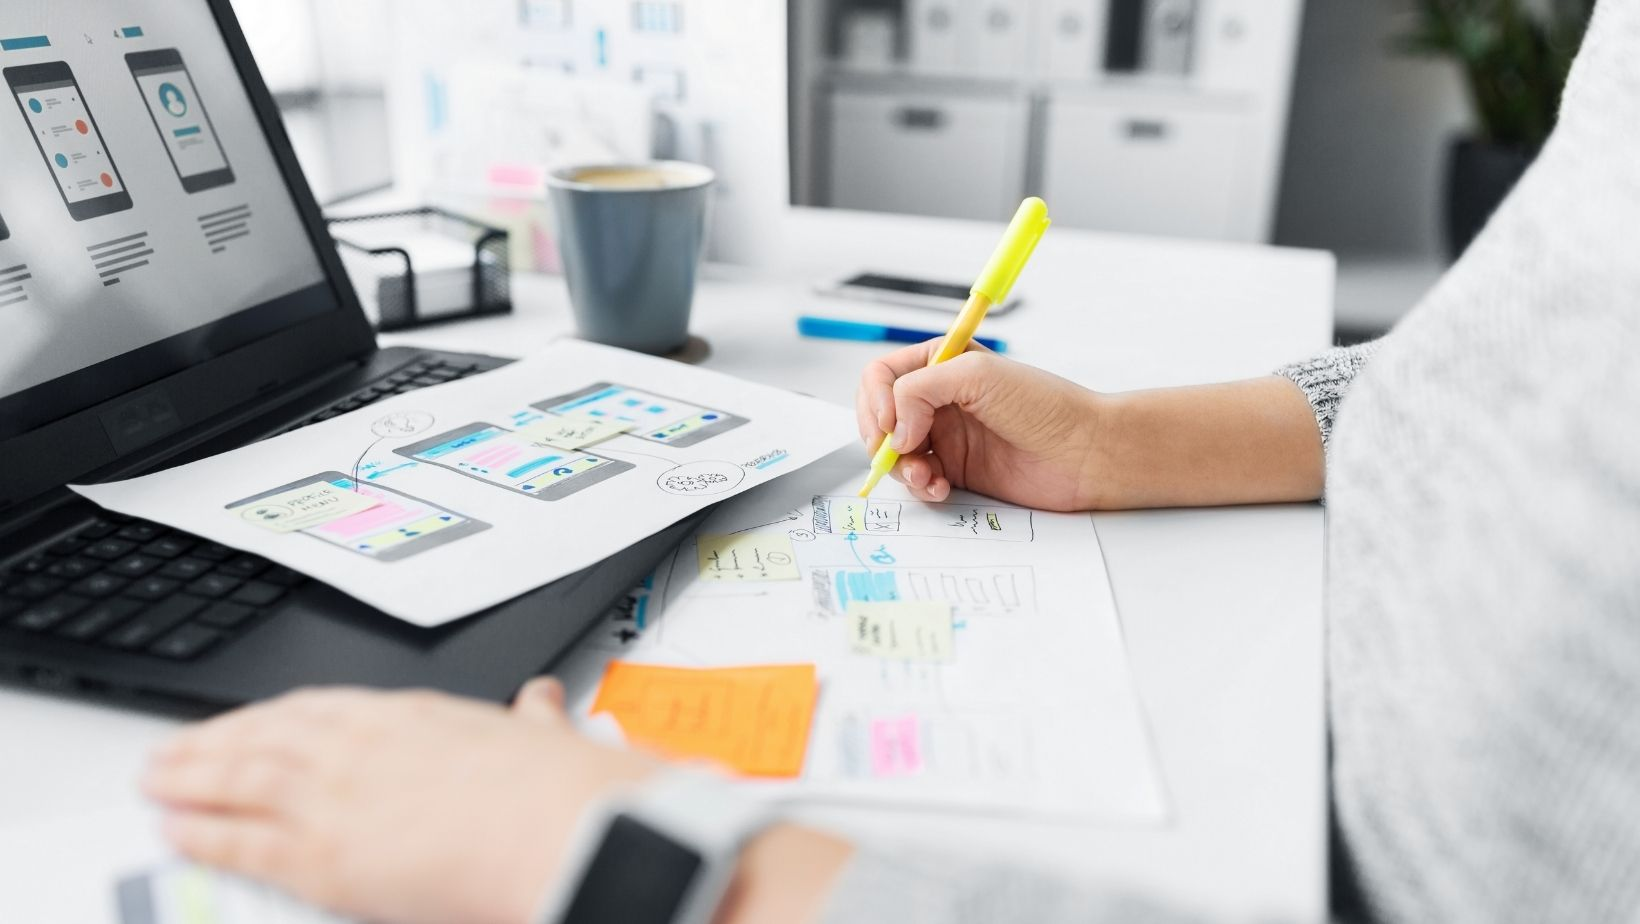 5 things to do to improve the website's usability